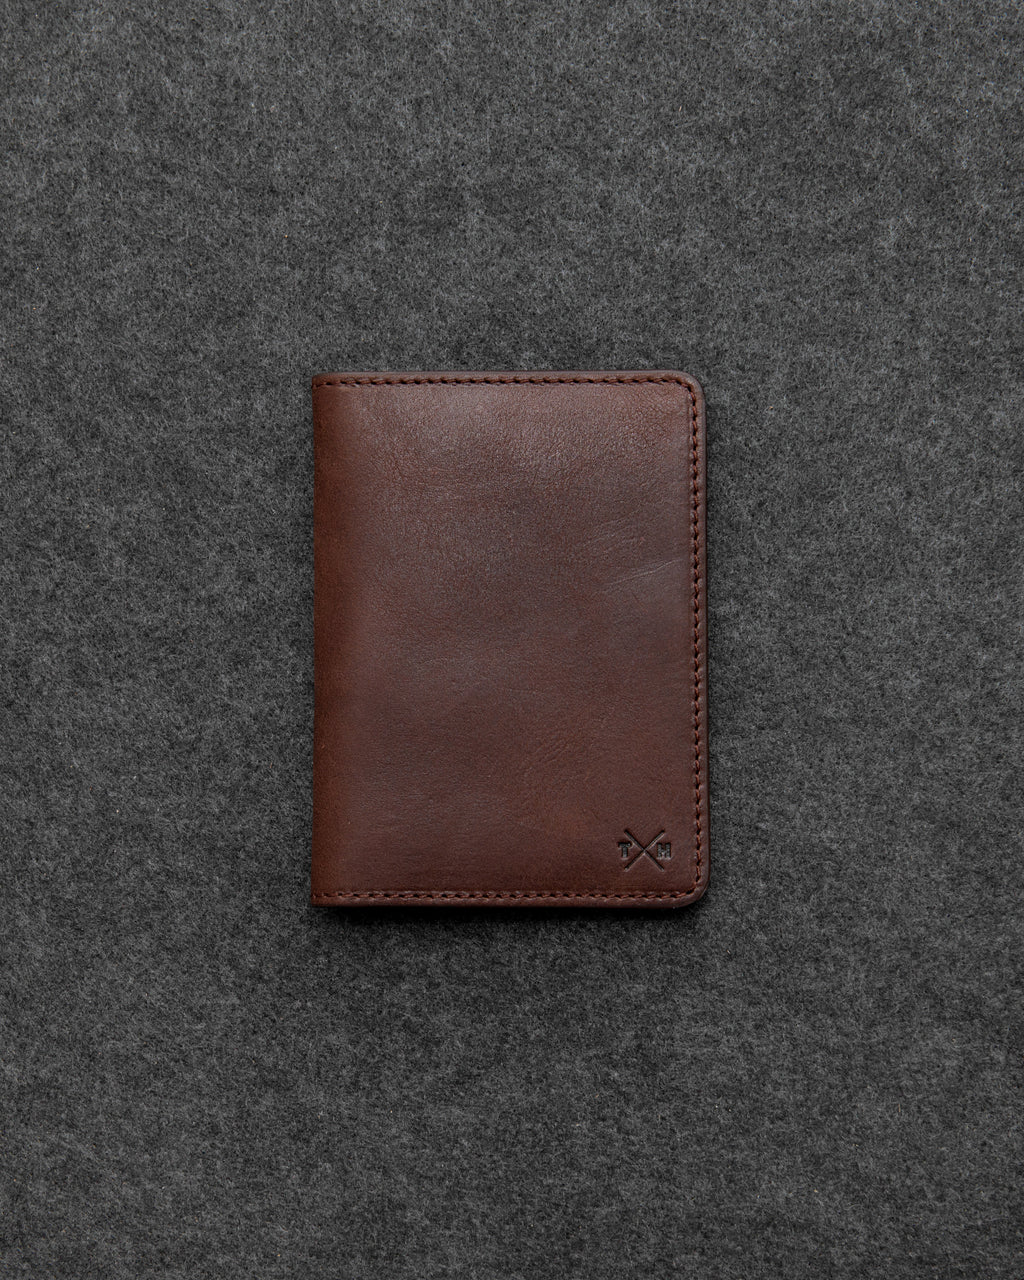 Brown Chukka Leather Passport Holder a